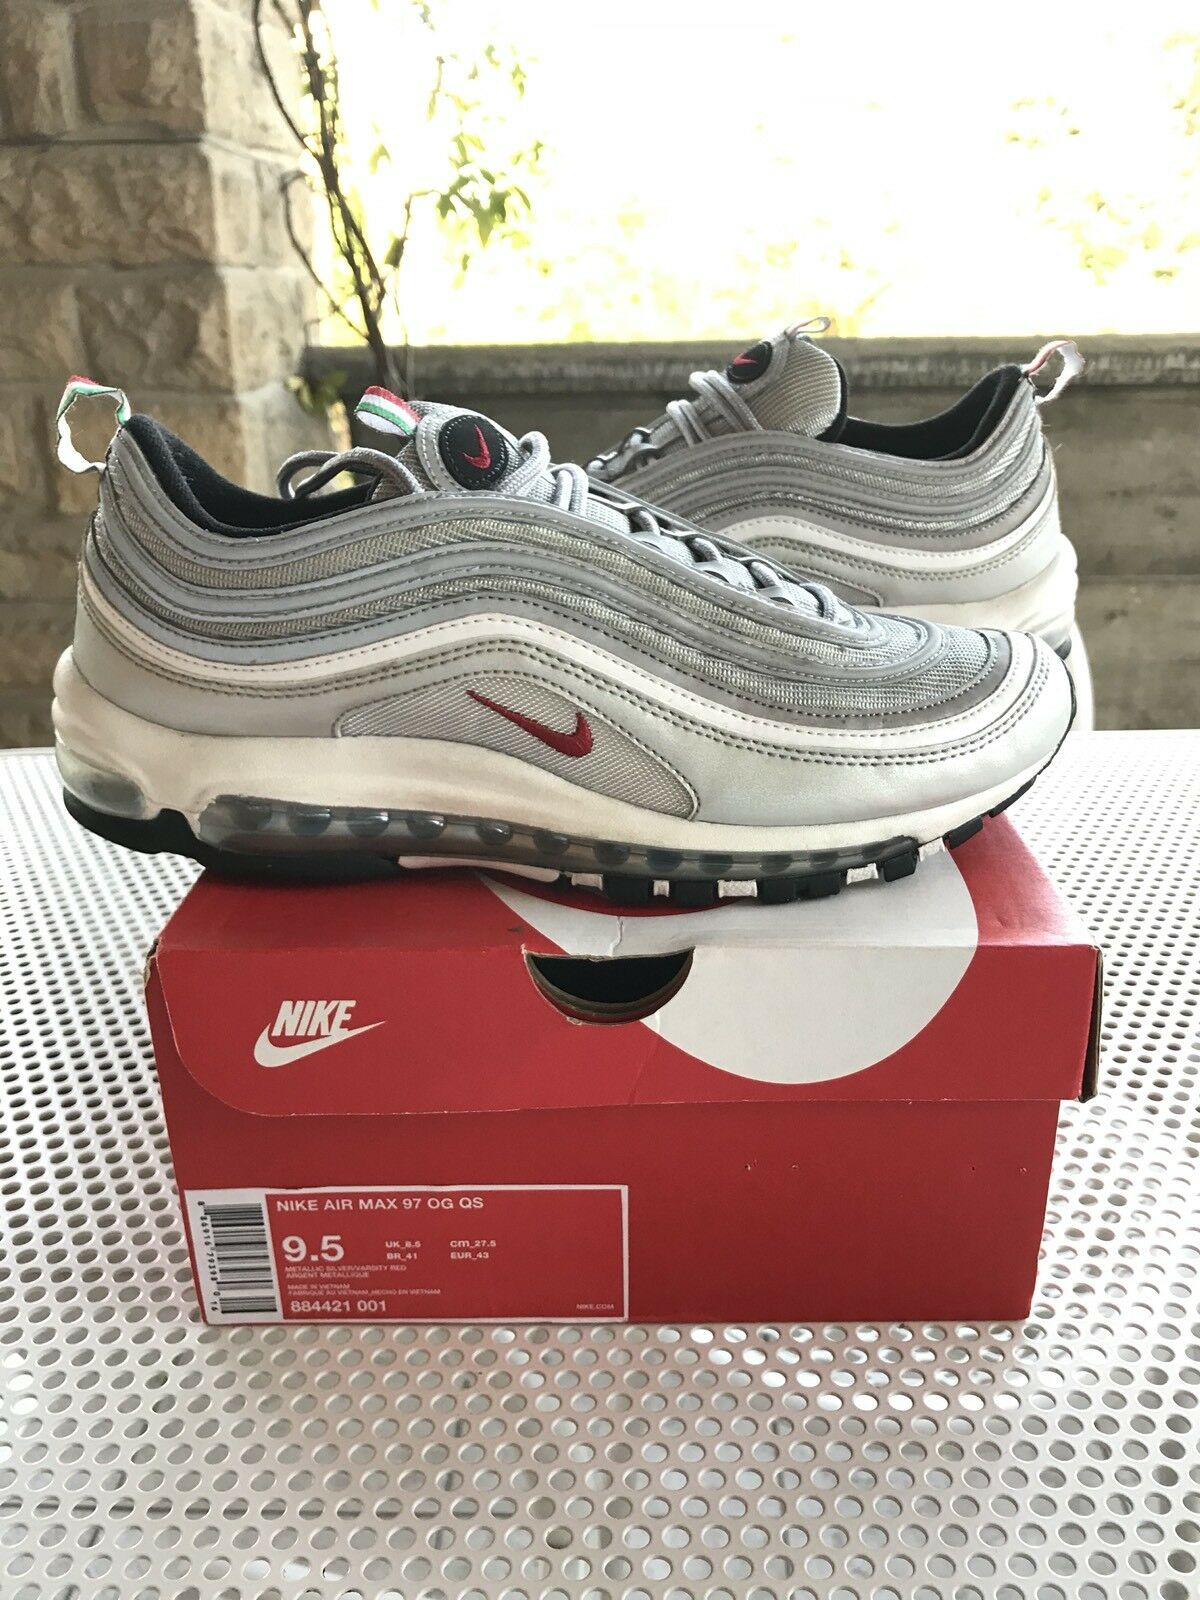 Nike air max 97 argent Laargent italy exclusive us 9.5 uk 8.5 eu 43 undefeated